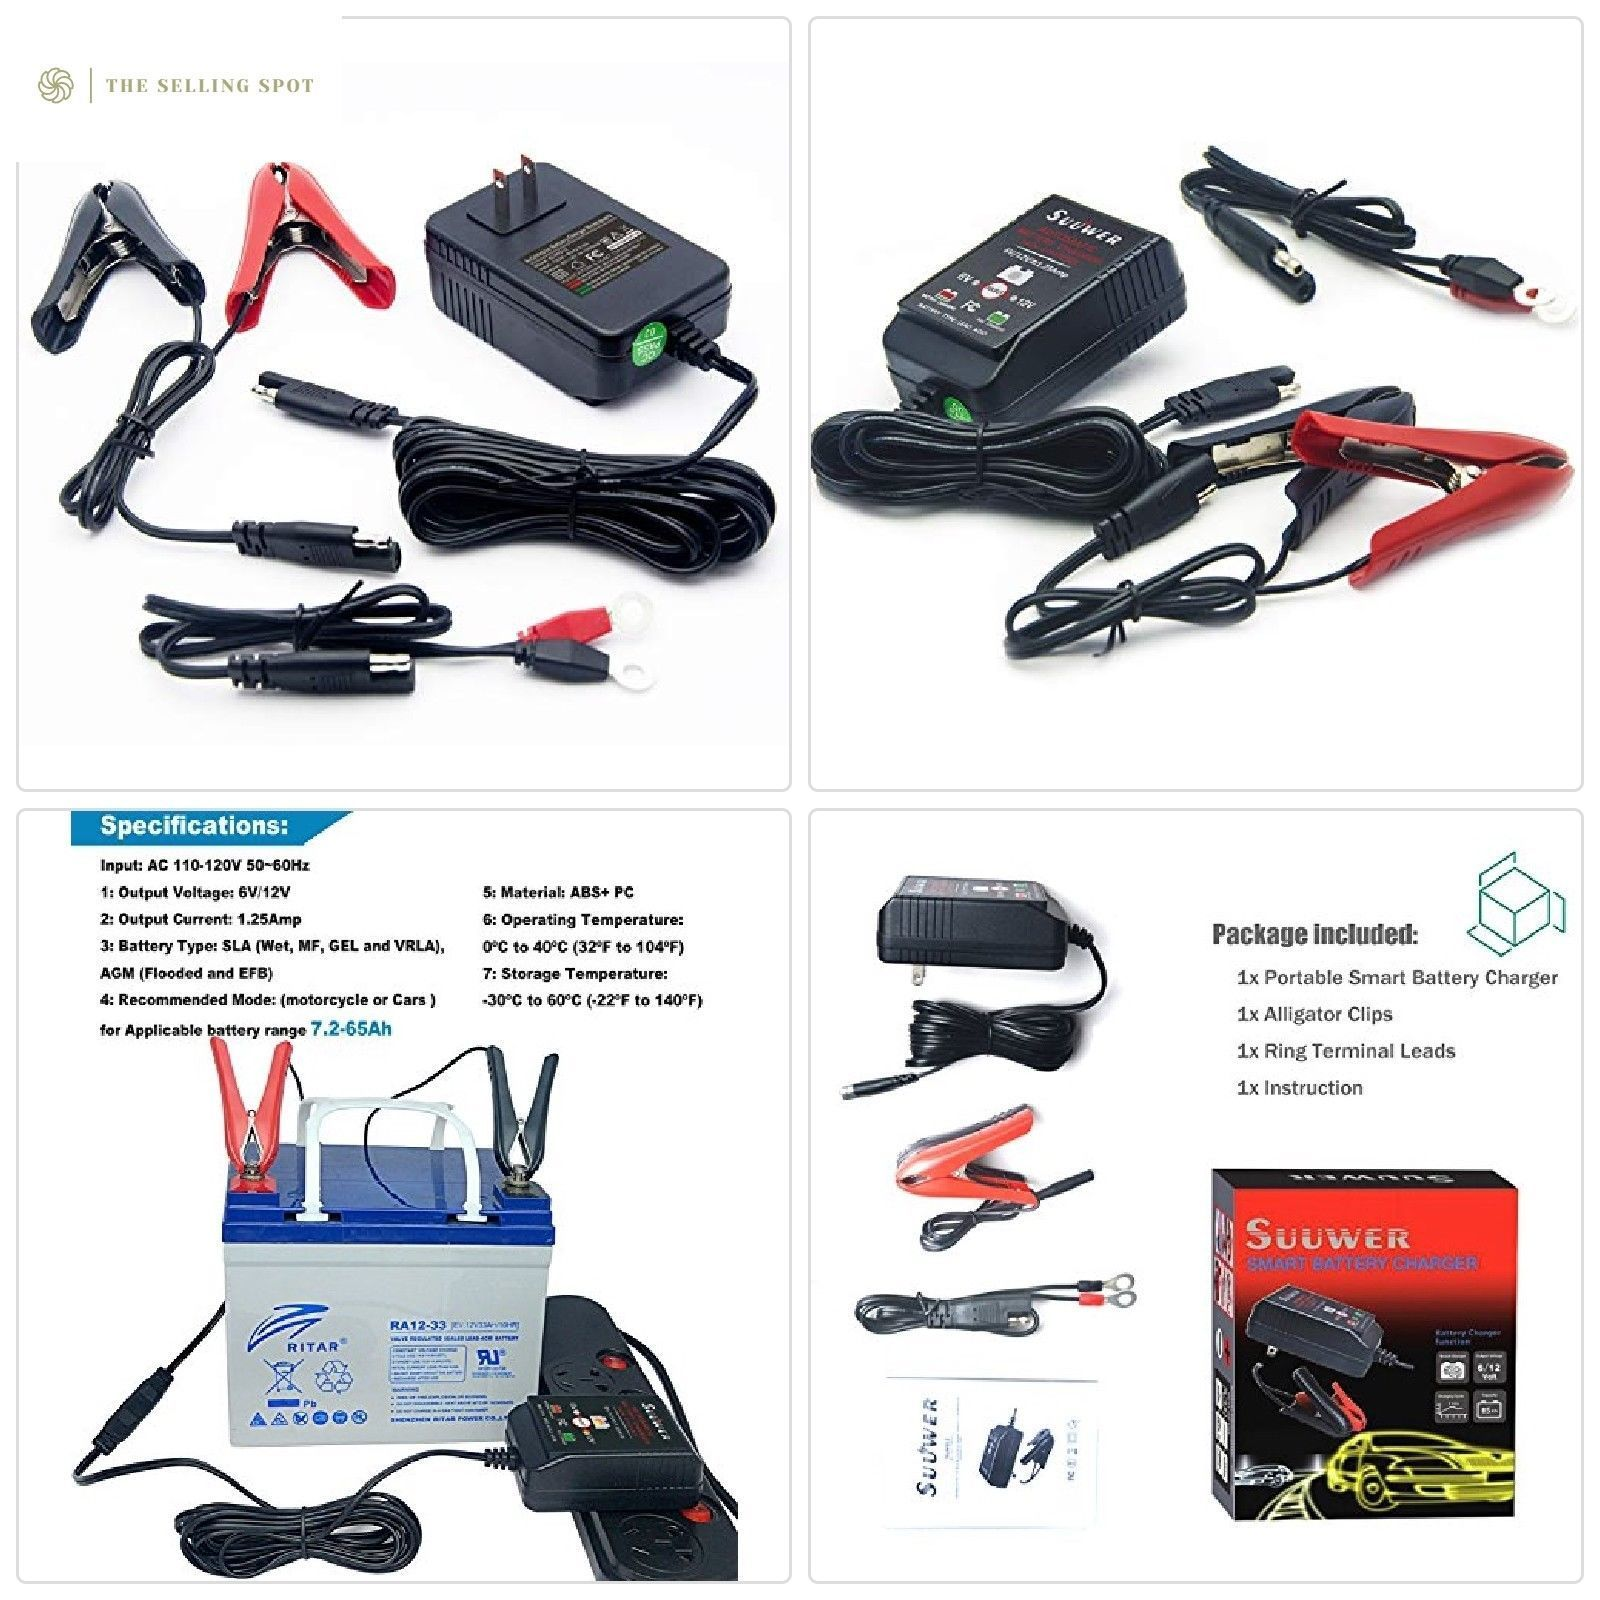 Suuwer 12V Smart Battery Charger / Trickle Chargers / For